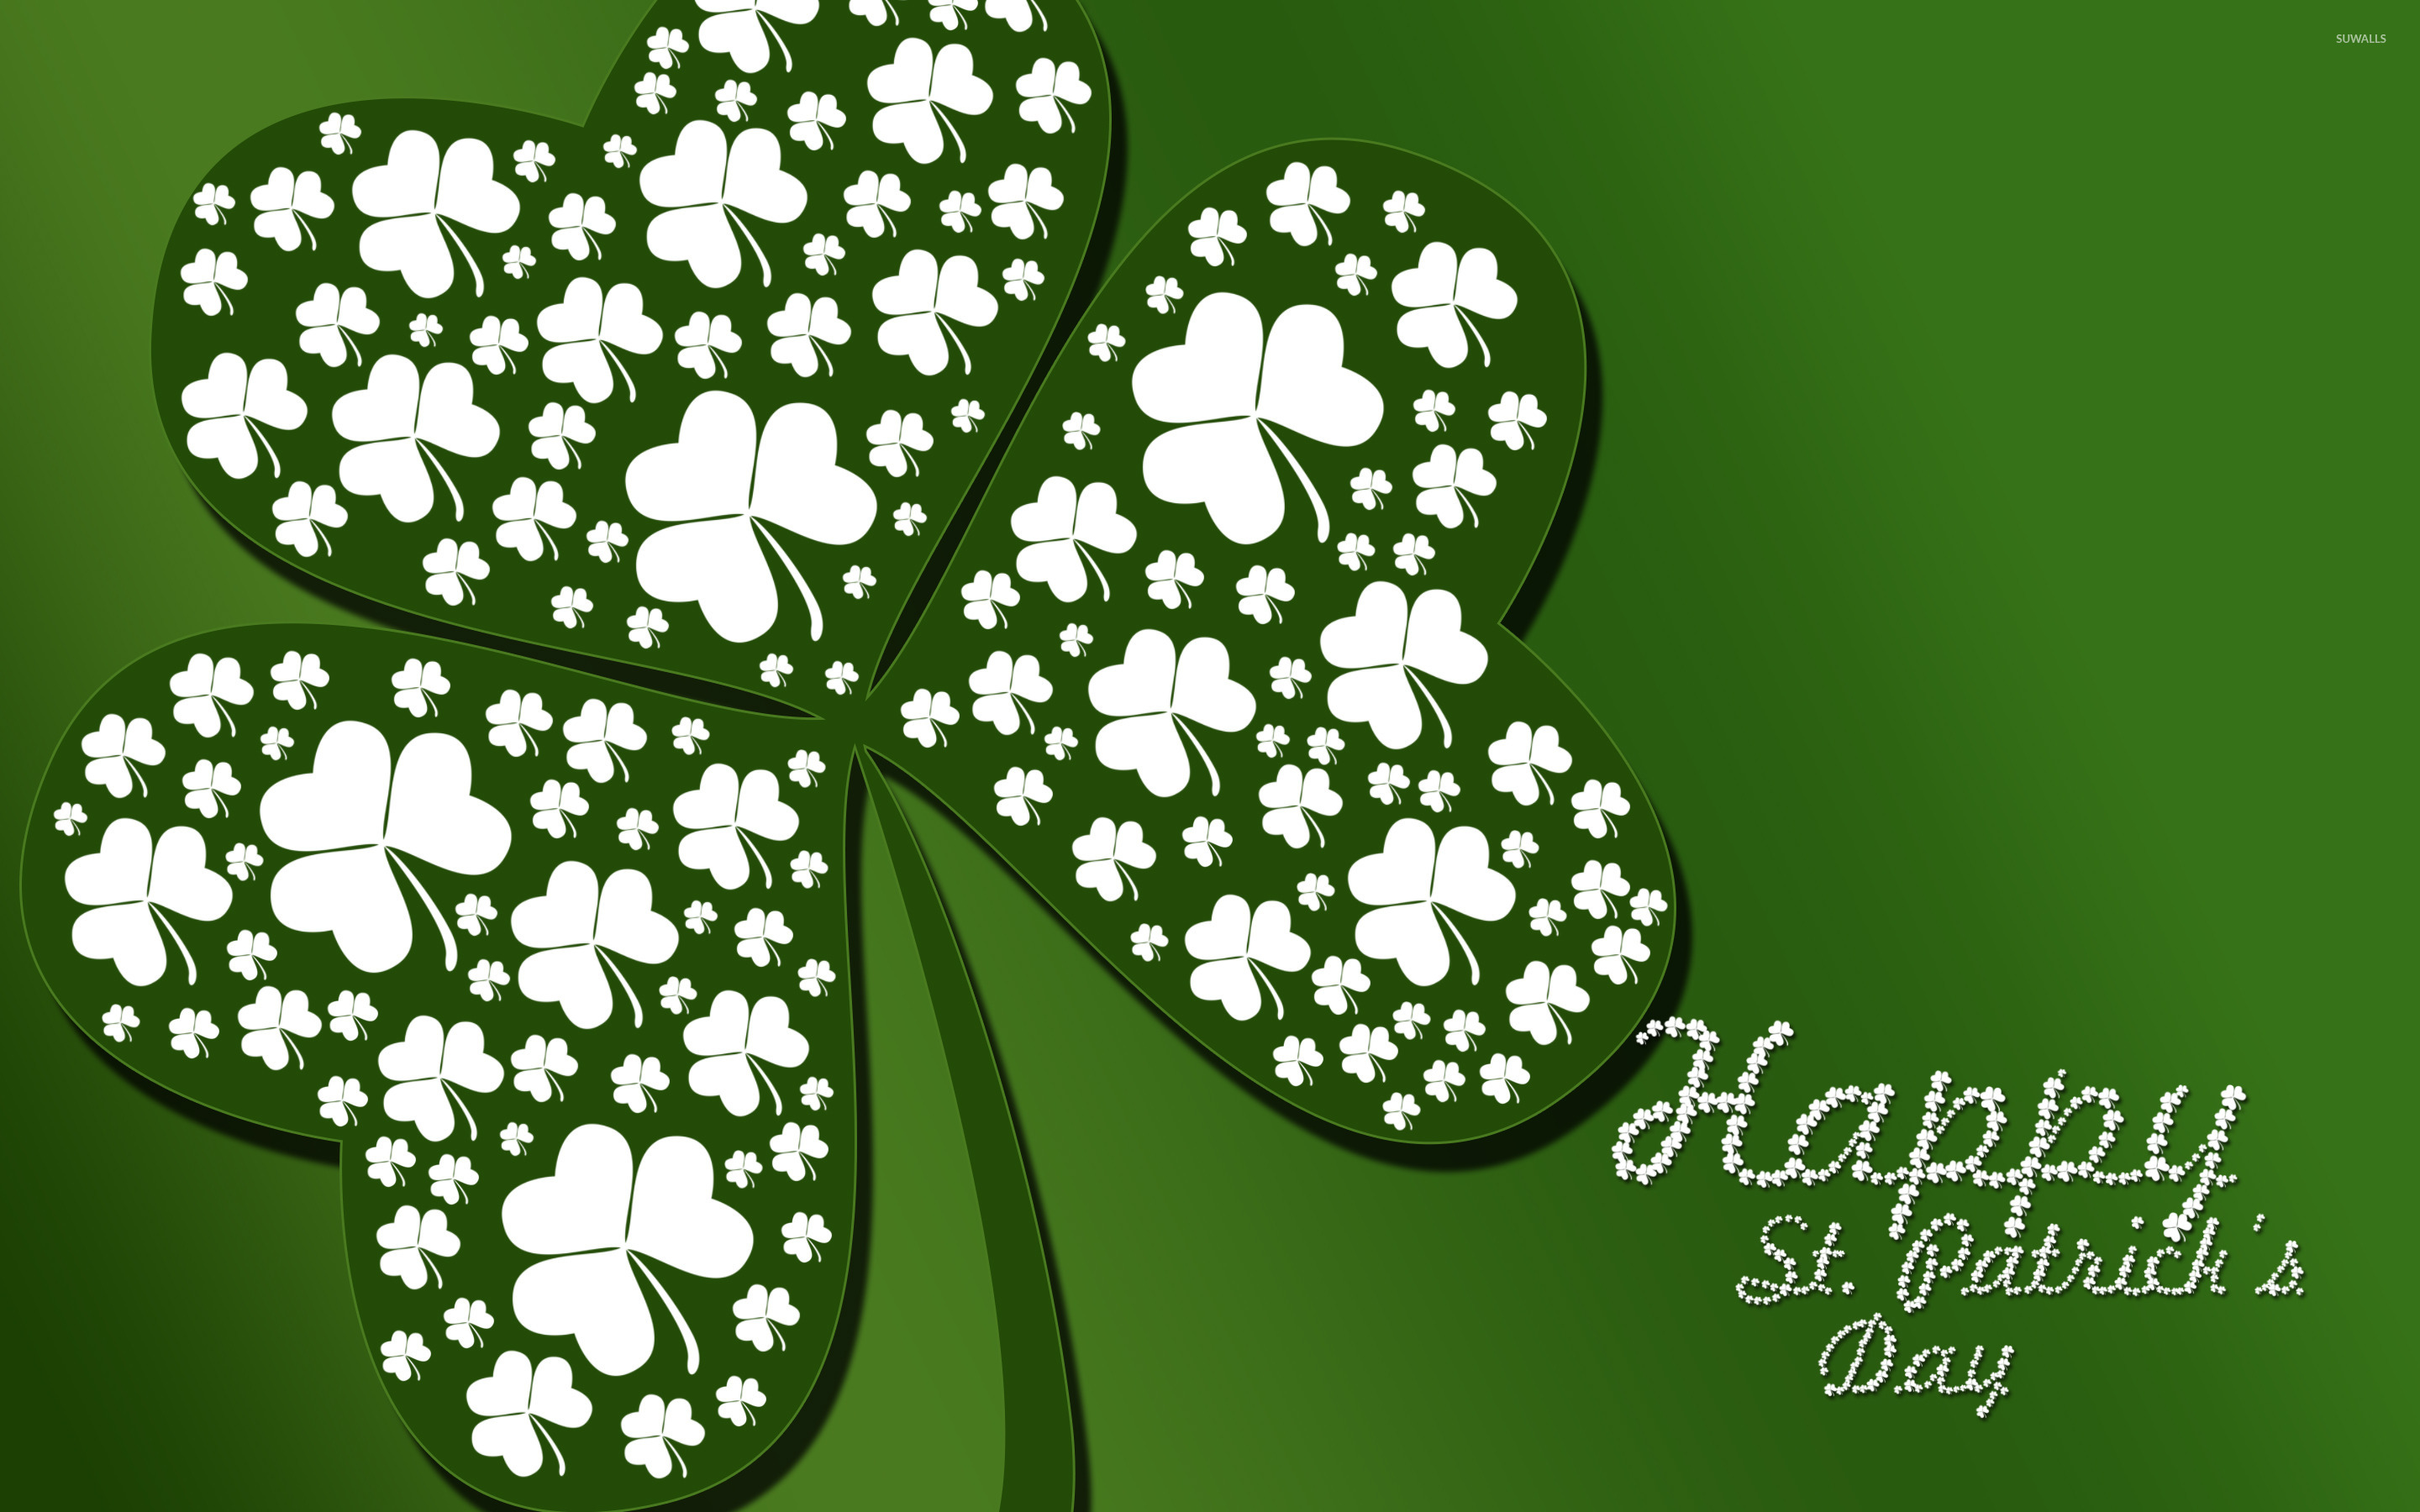 St Patricks Day wallpaper   Holiday wallpapers   39523 2880x1800